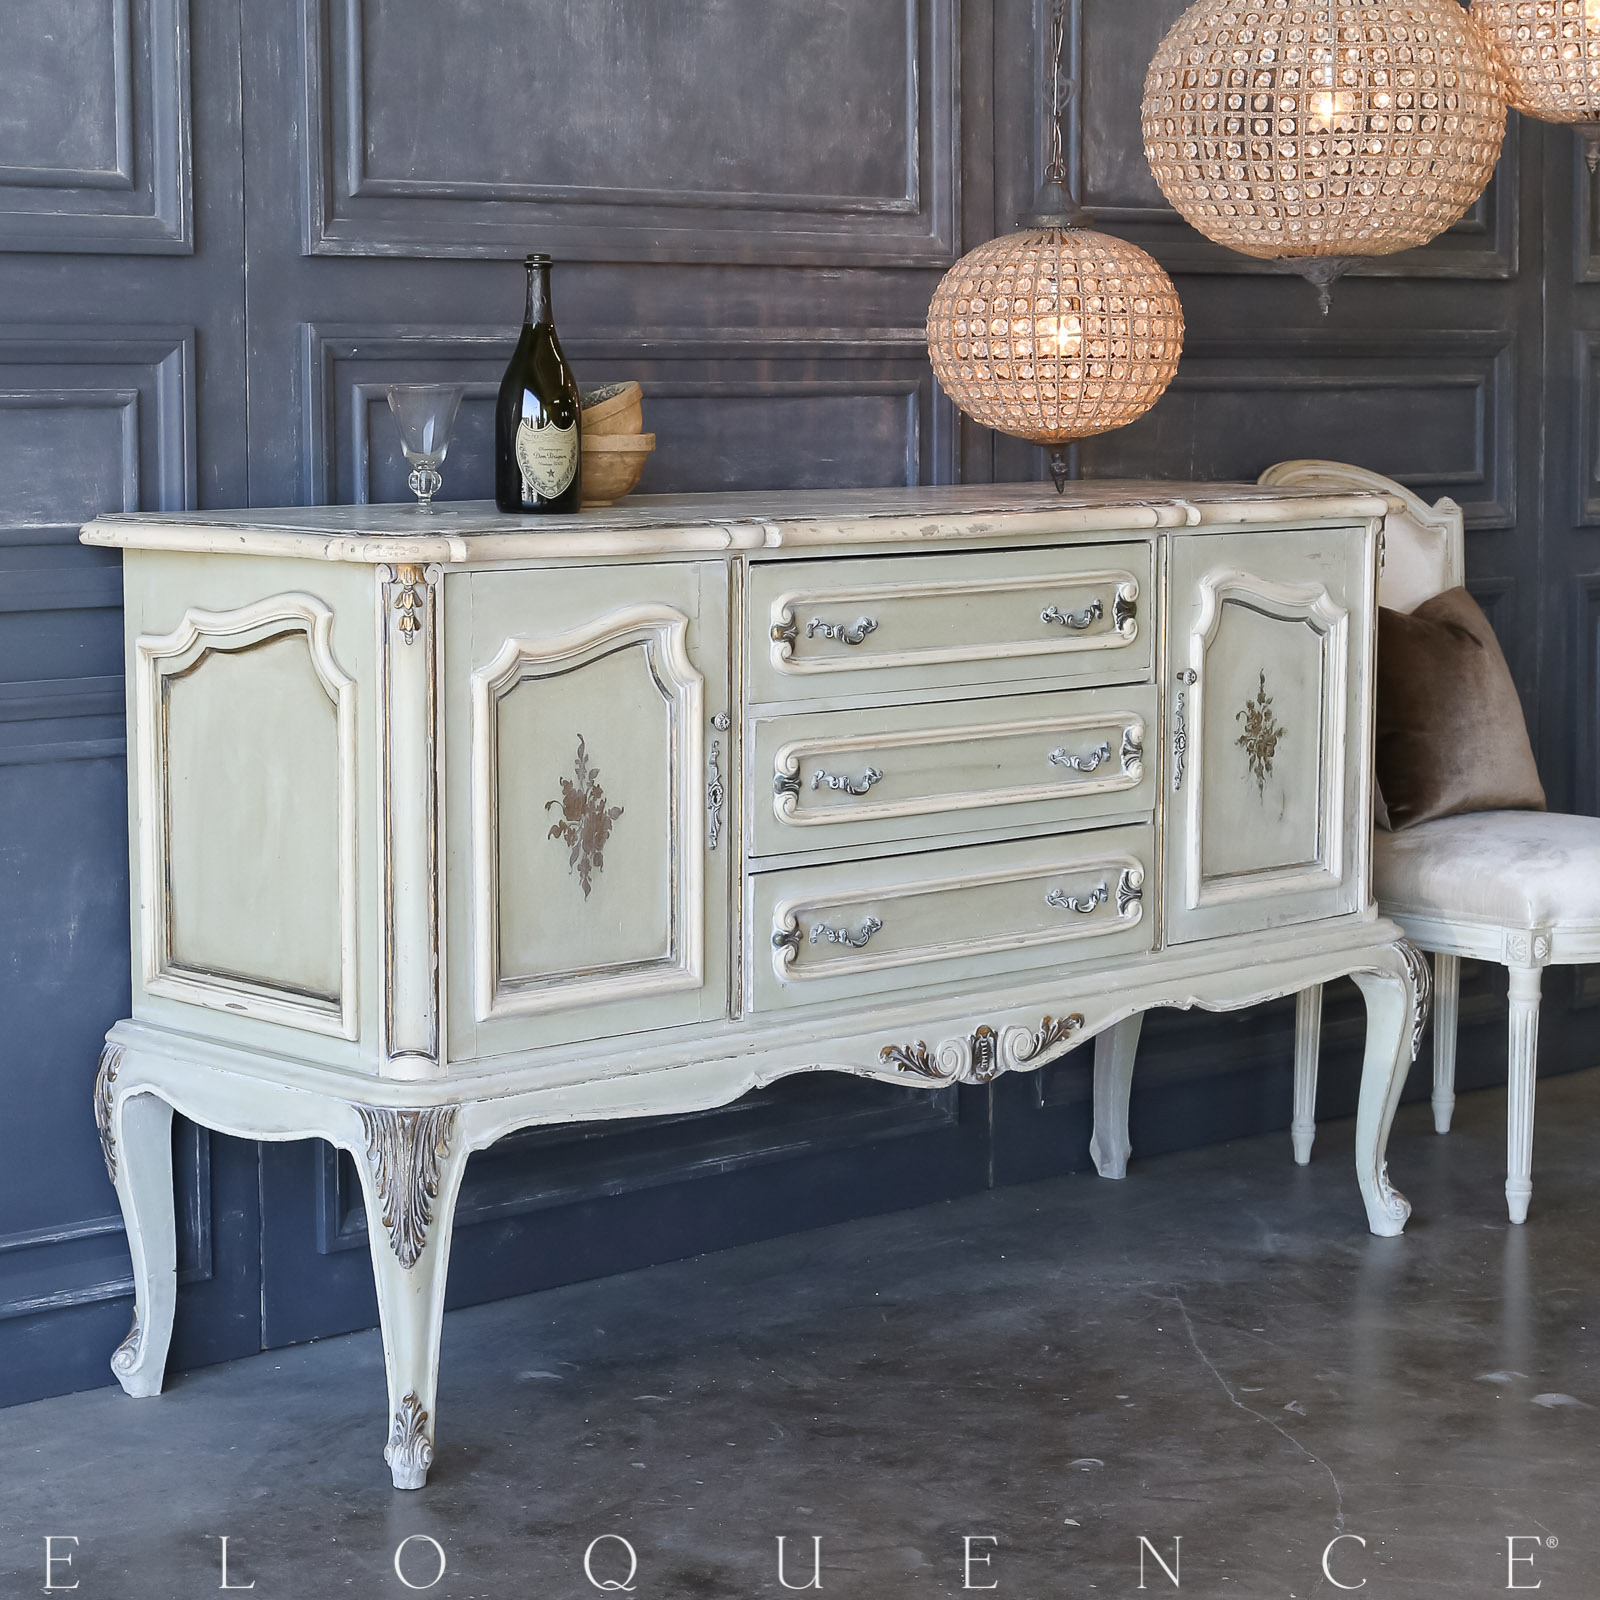 Eloquence® Vintage Pale Green Sideboard: 1940